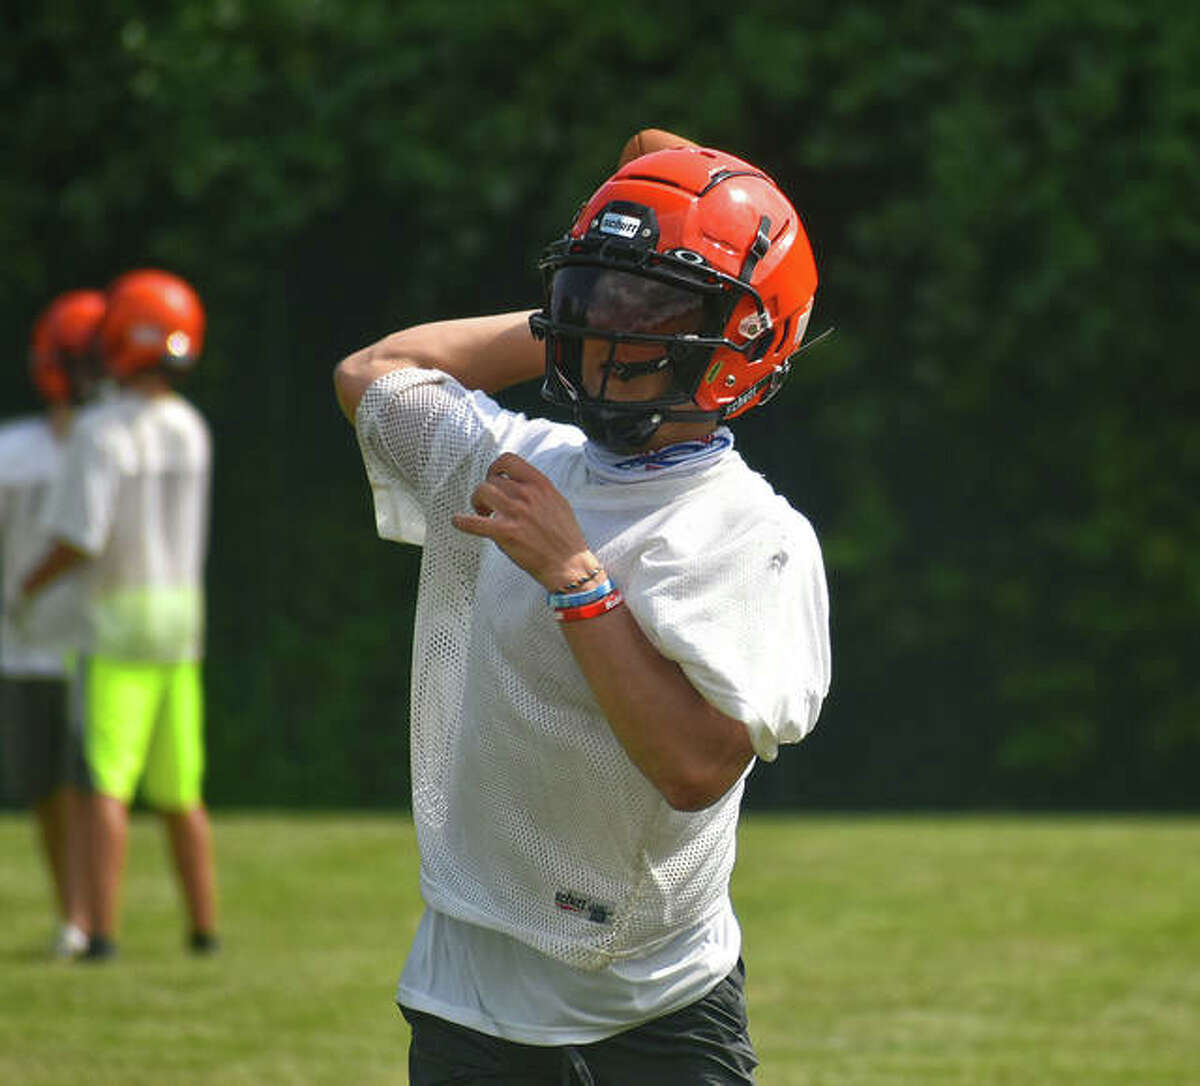 Edwardsville sophomore quarterback Jake Curry will get the start Friday at De Smet. It will be his second career start.